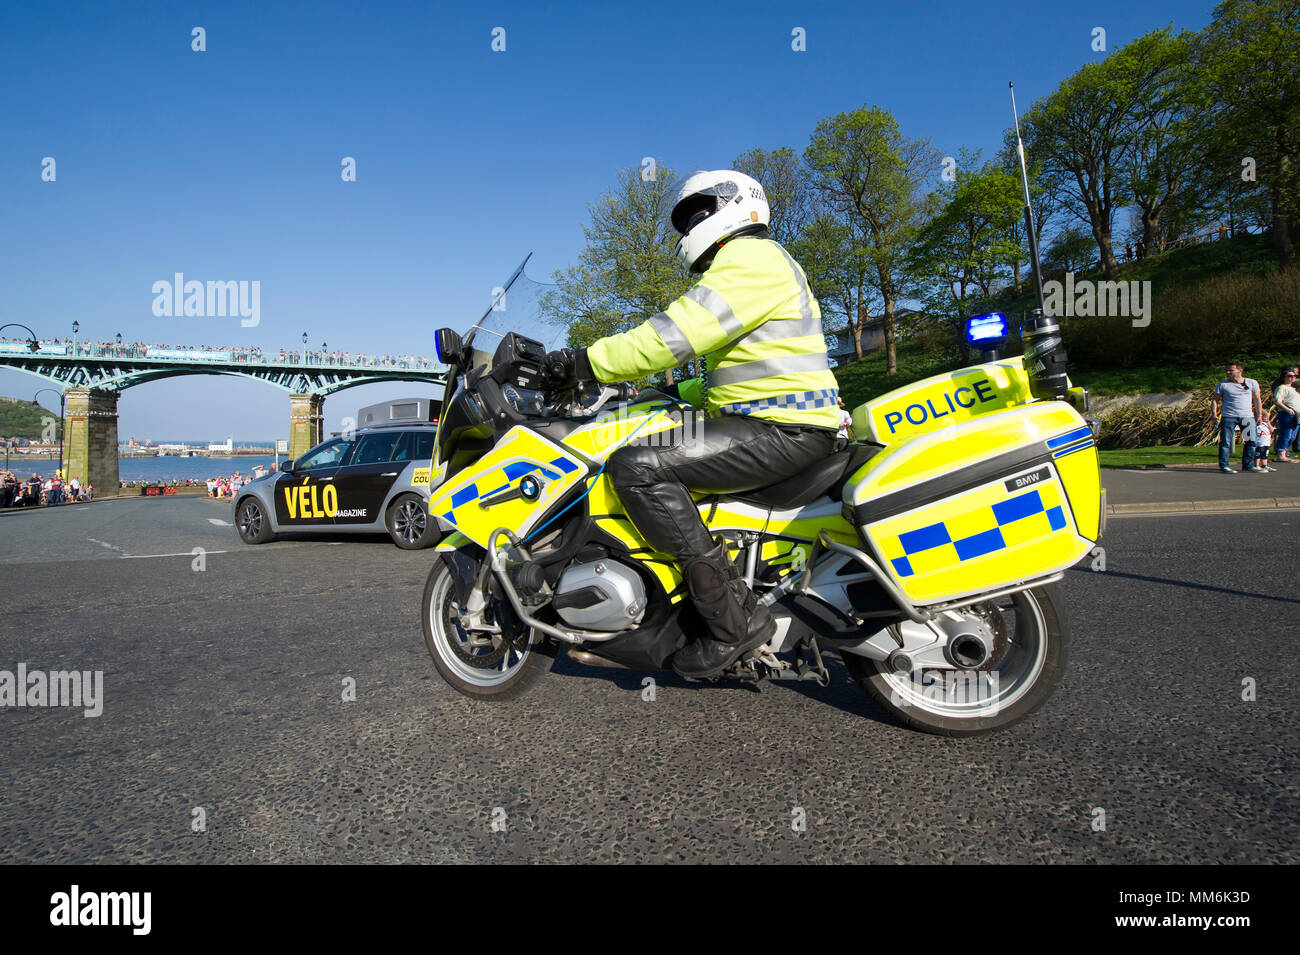 One of the police motorcycle riders stops traffic on stage 3 of the Tour De Yorkshire cycle race 2018 passes through Scarborough in North Yorkshire - Stock Image